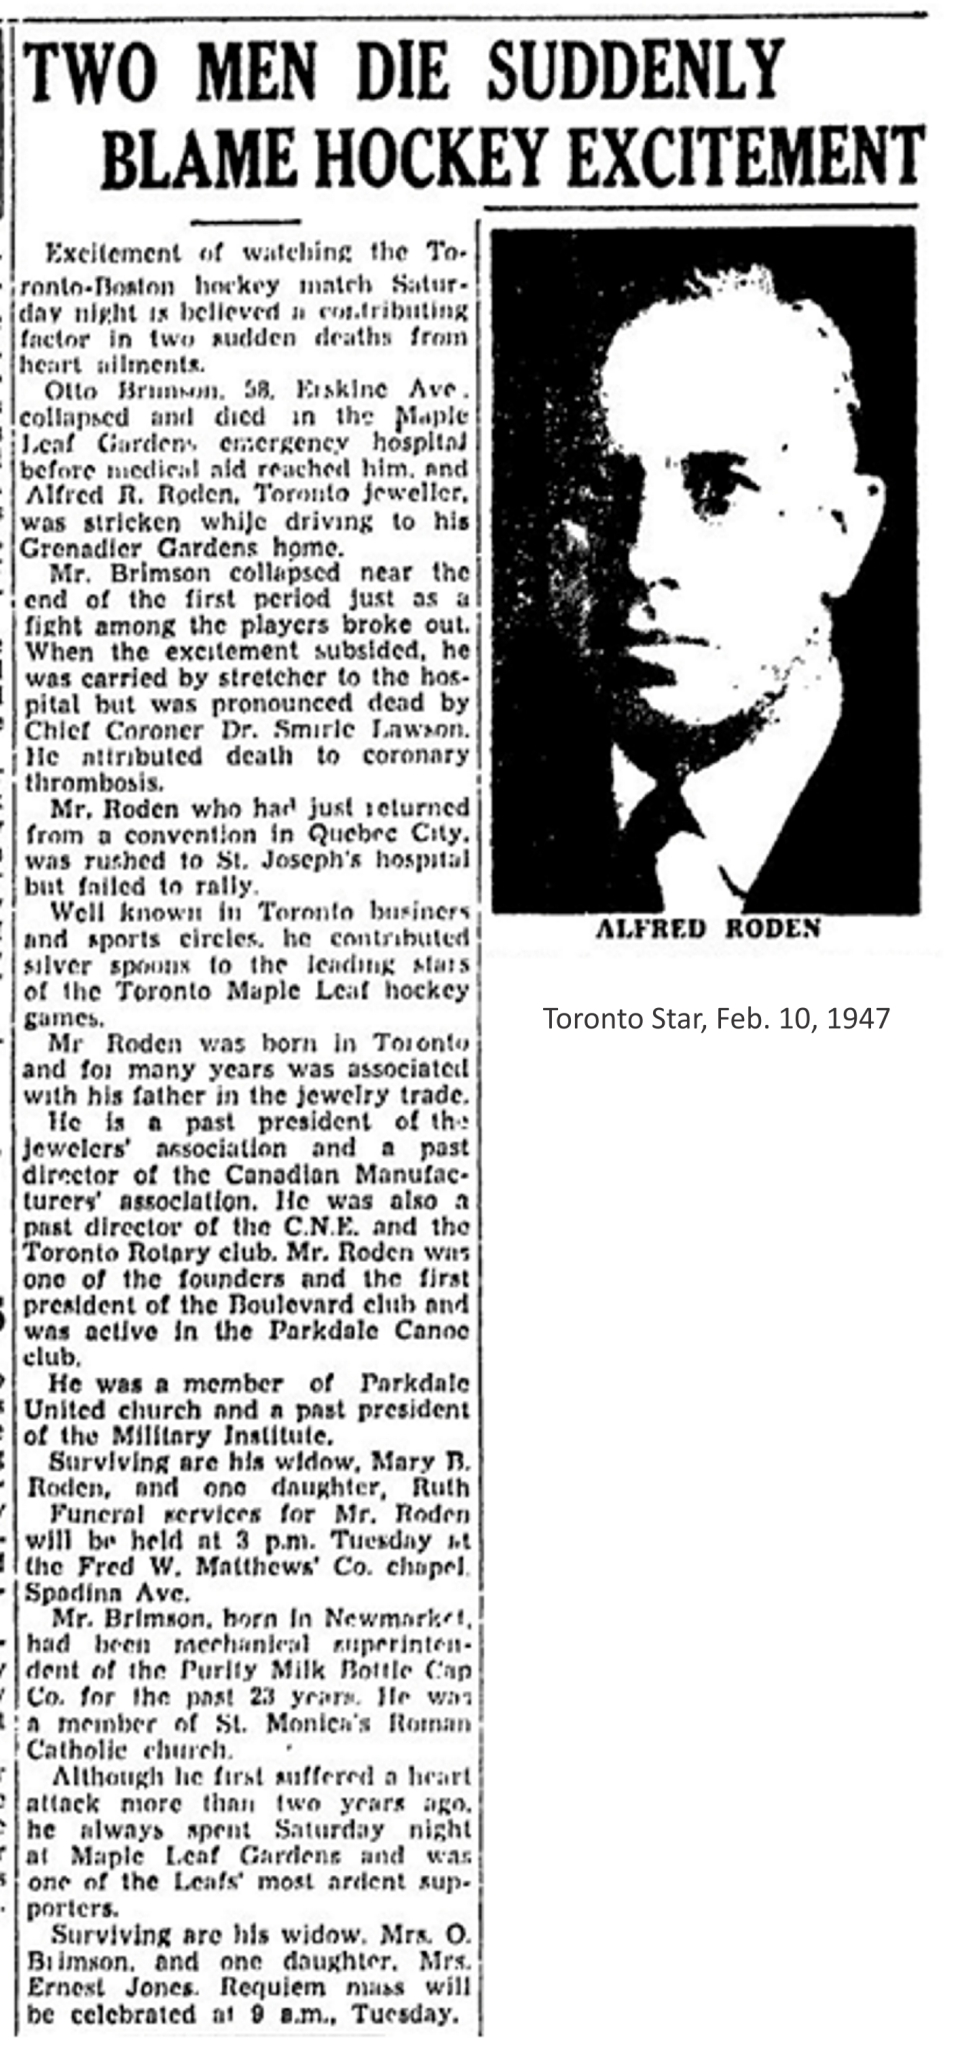 toronto-star-feb-10-1947-obit